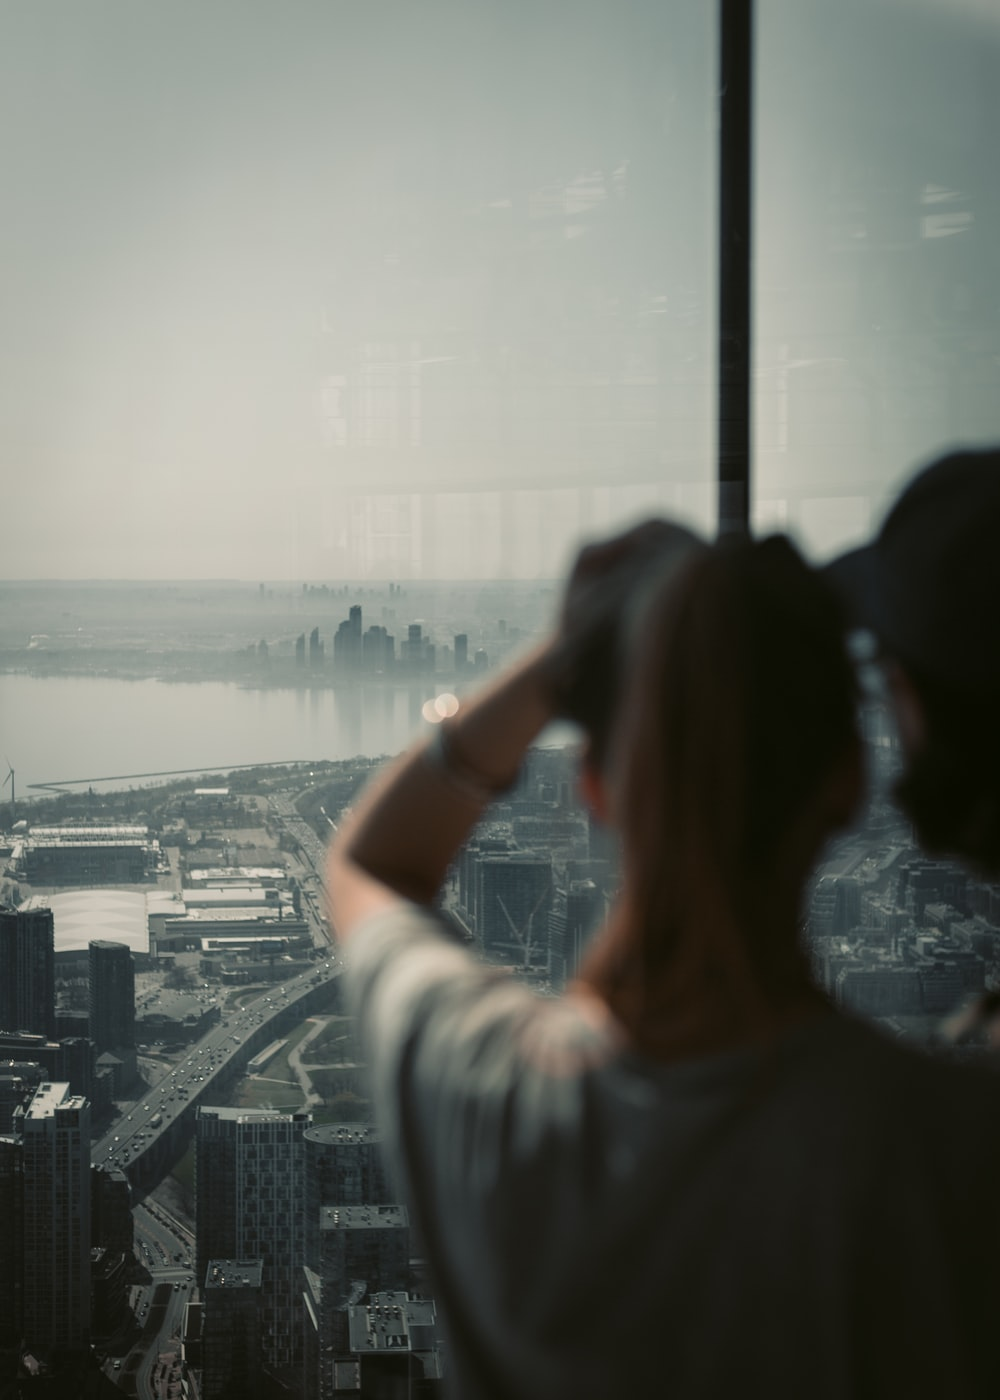 woman in white shirt taking photo of city skyline during daytime